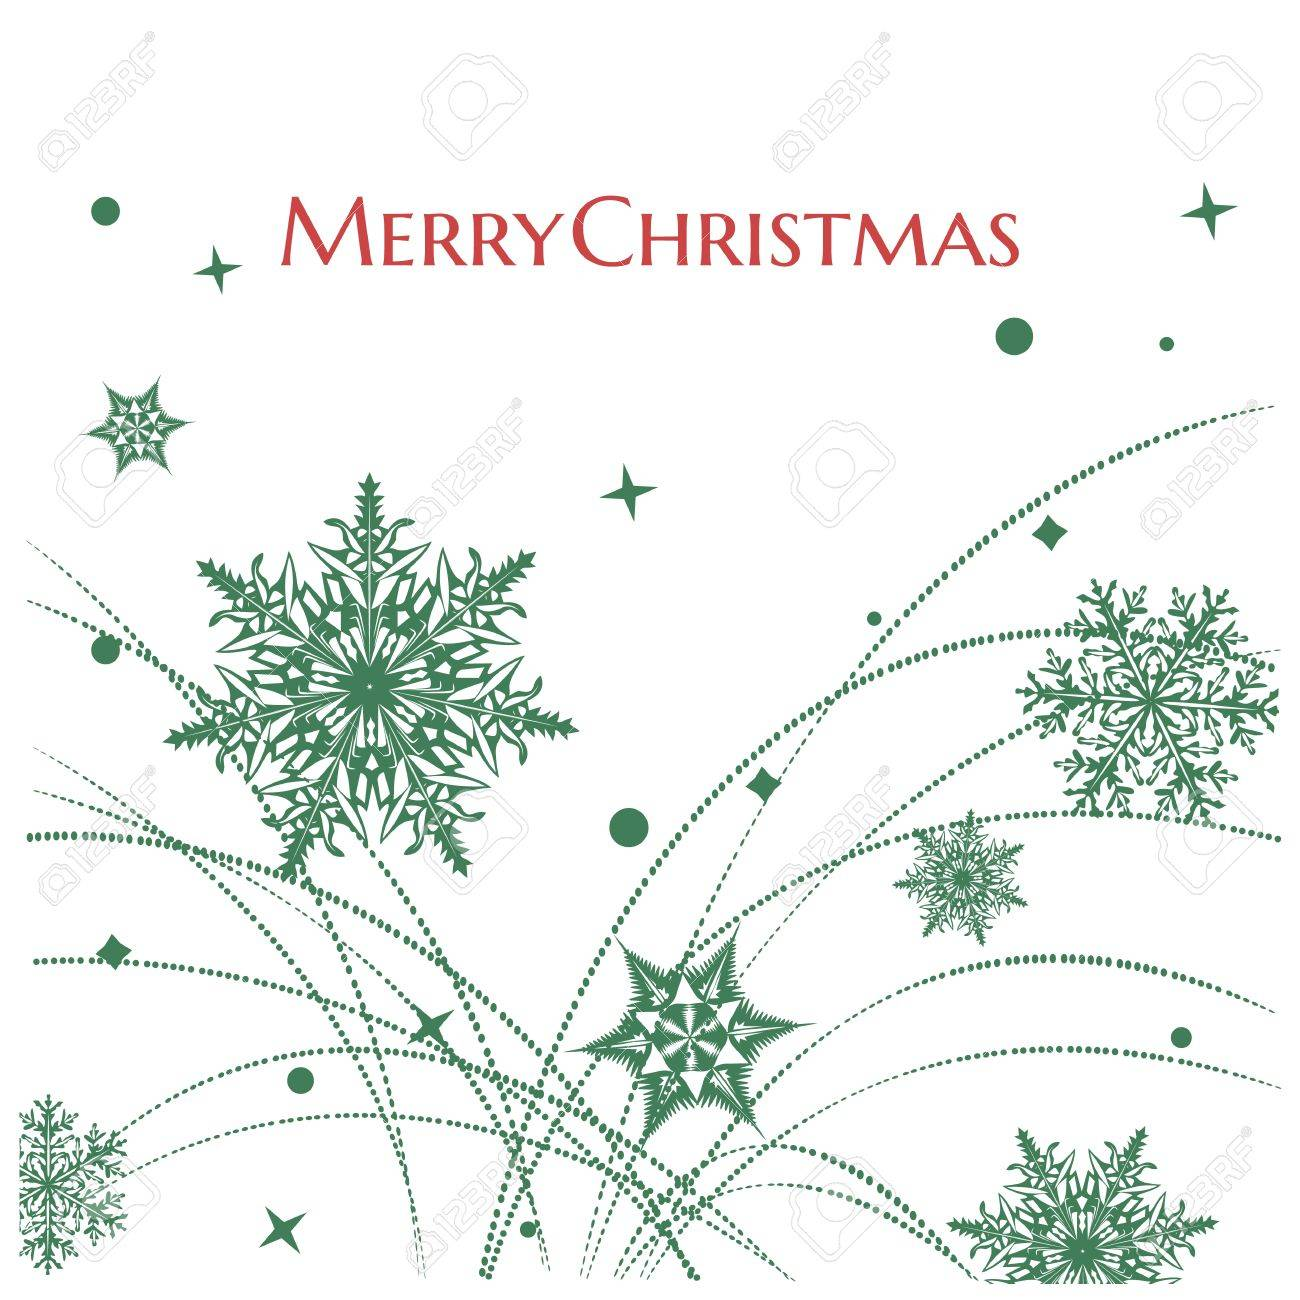 Simple elegant snowflakes background/Simple elegant snowflakes background with Merry Christmas greeting text Stock Vector - 15826373